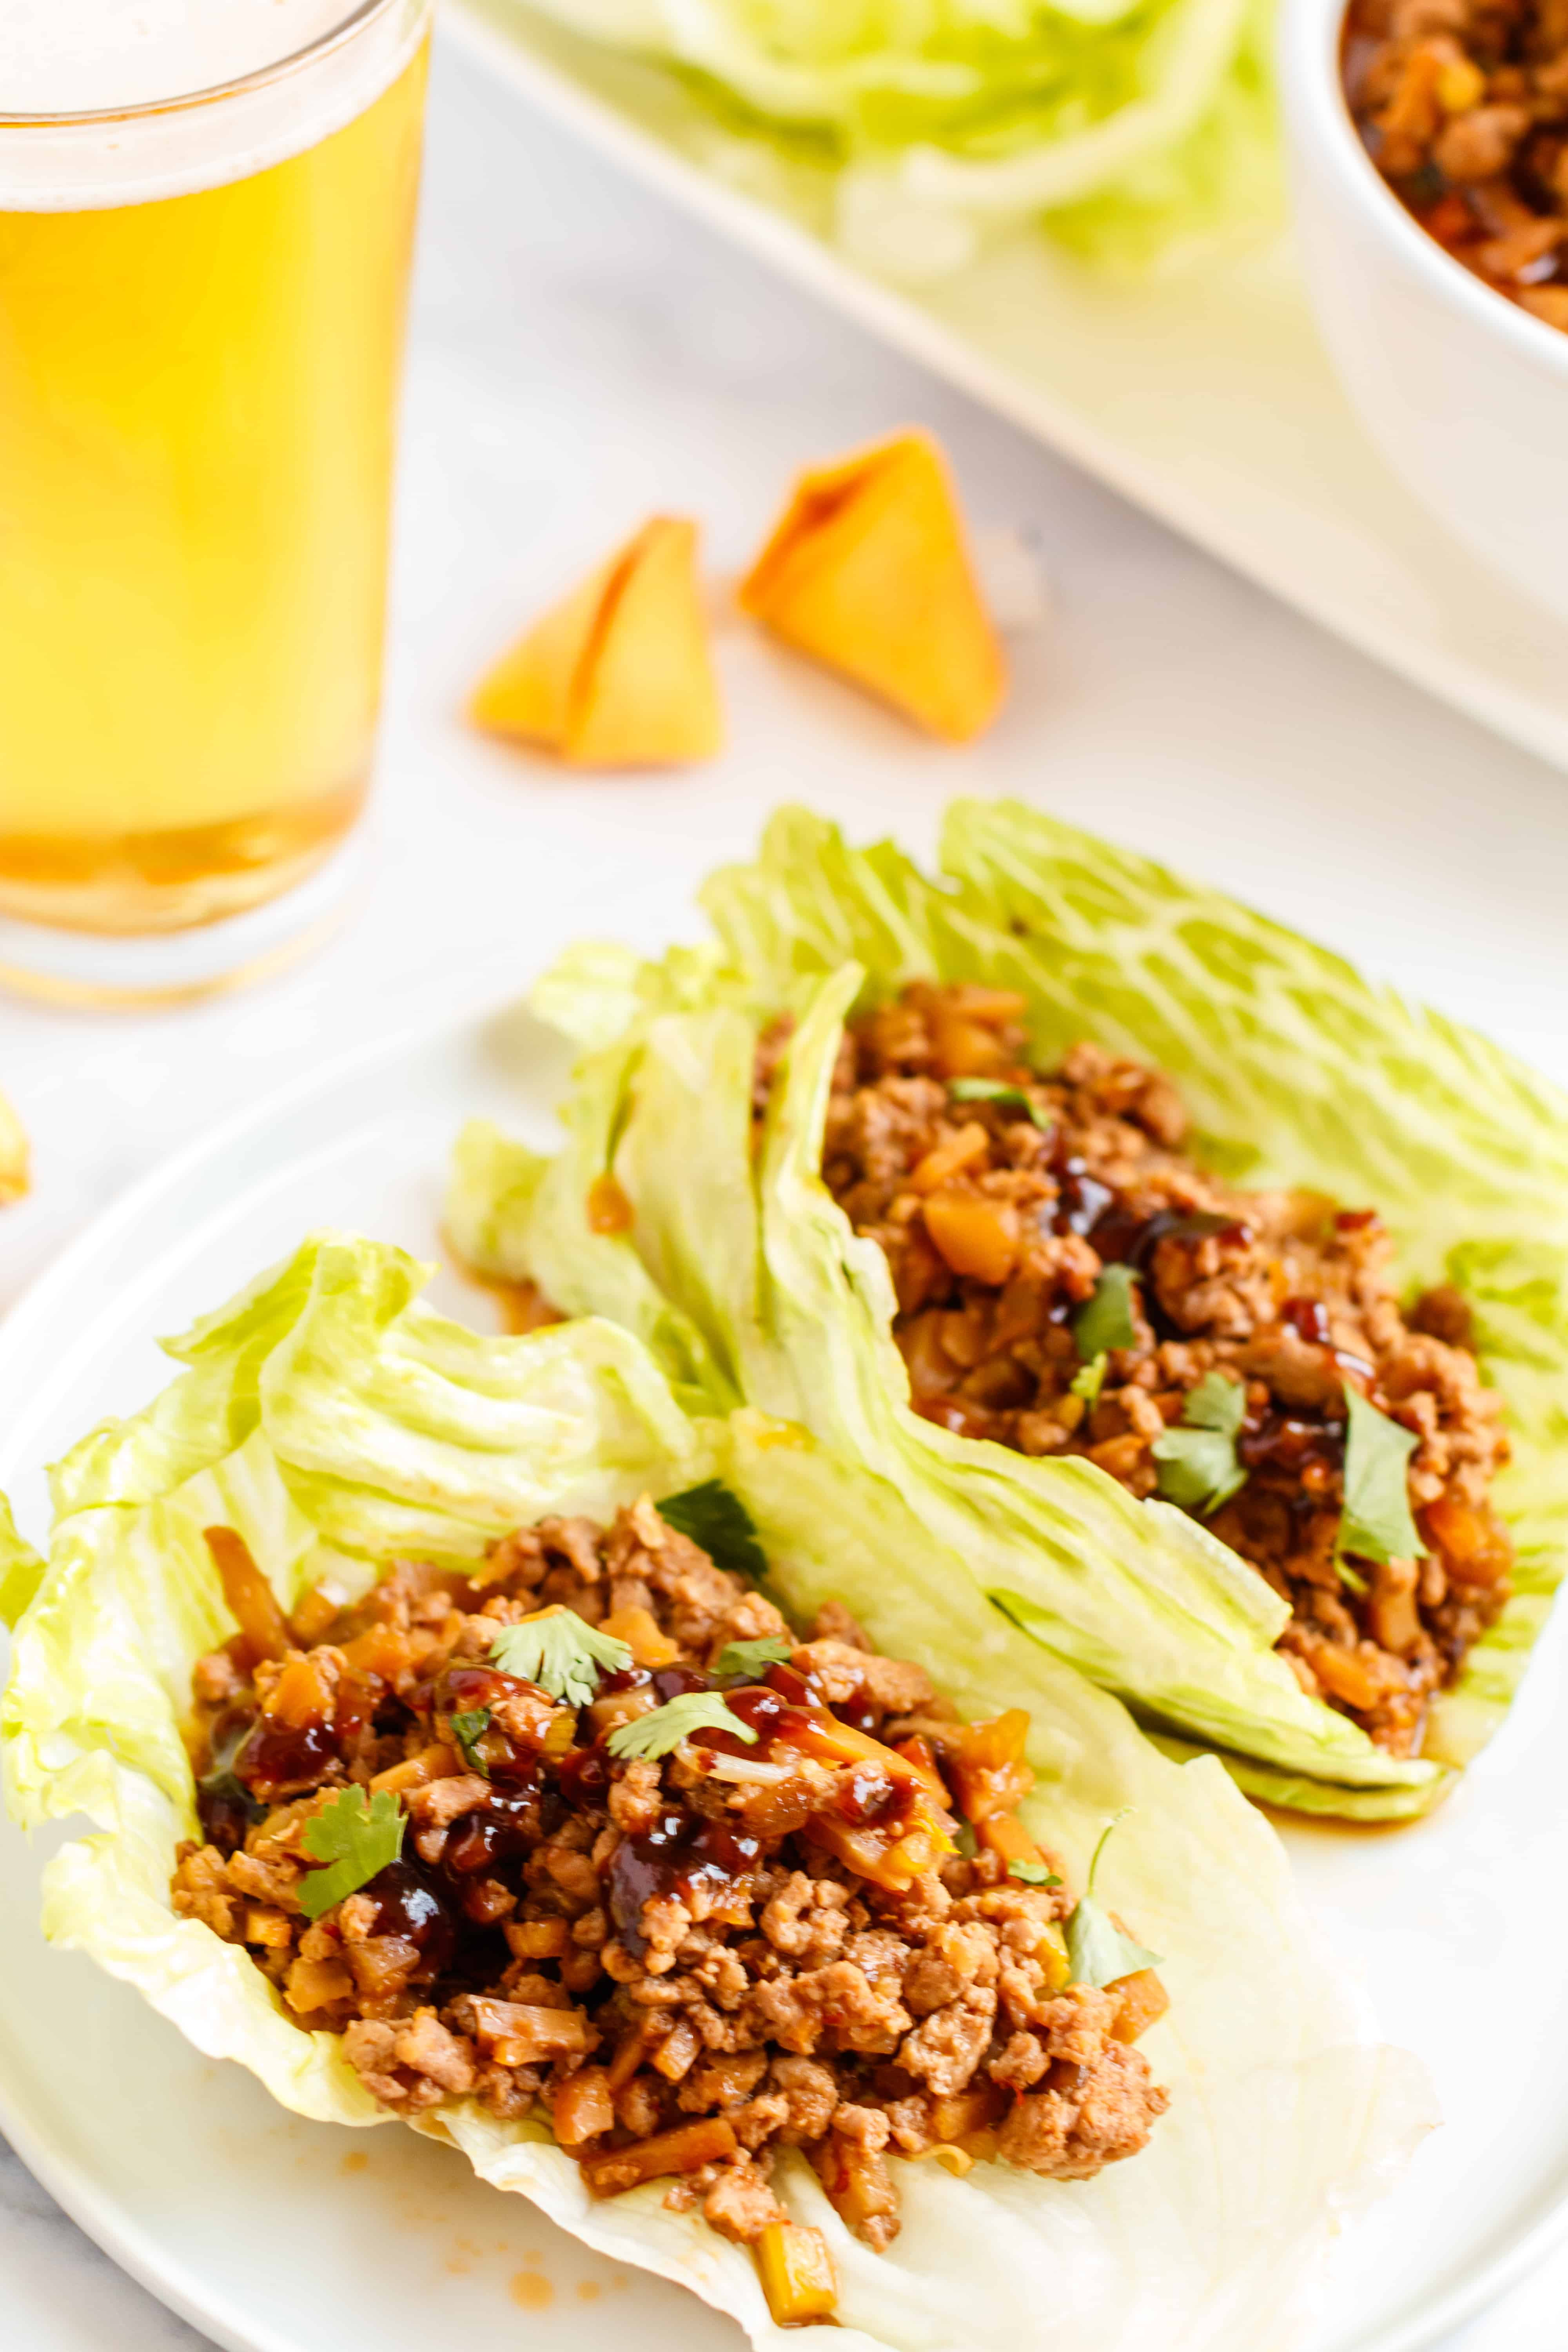 Lettuce wraps filled with crockpot meat, one a white plate.